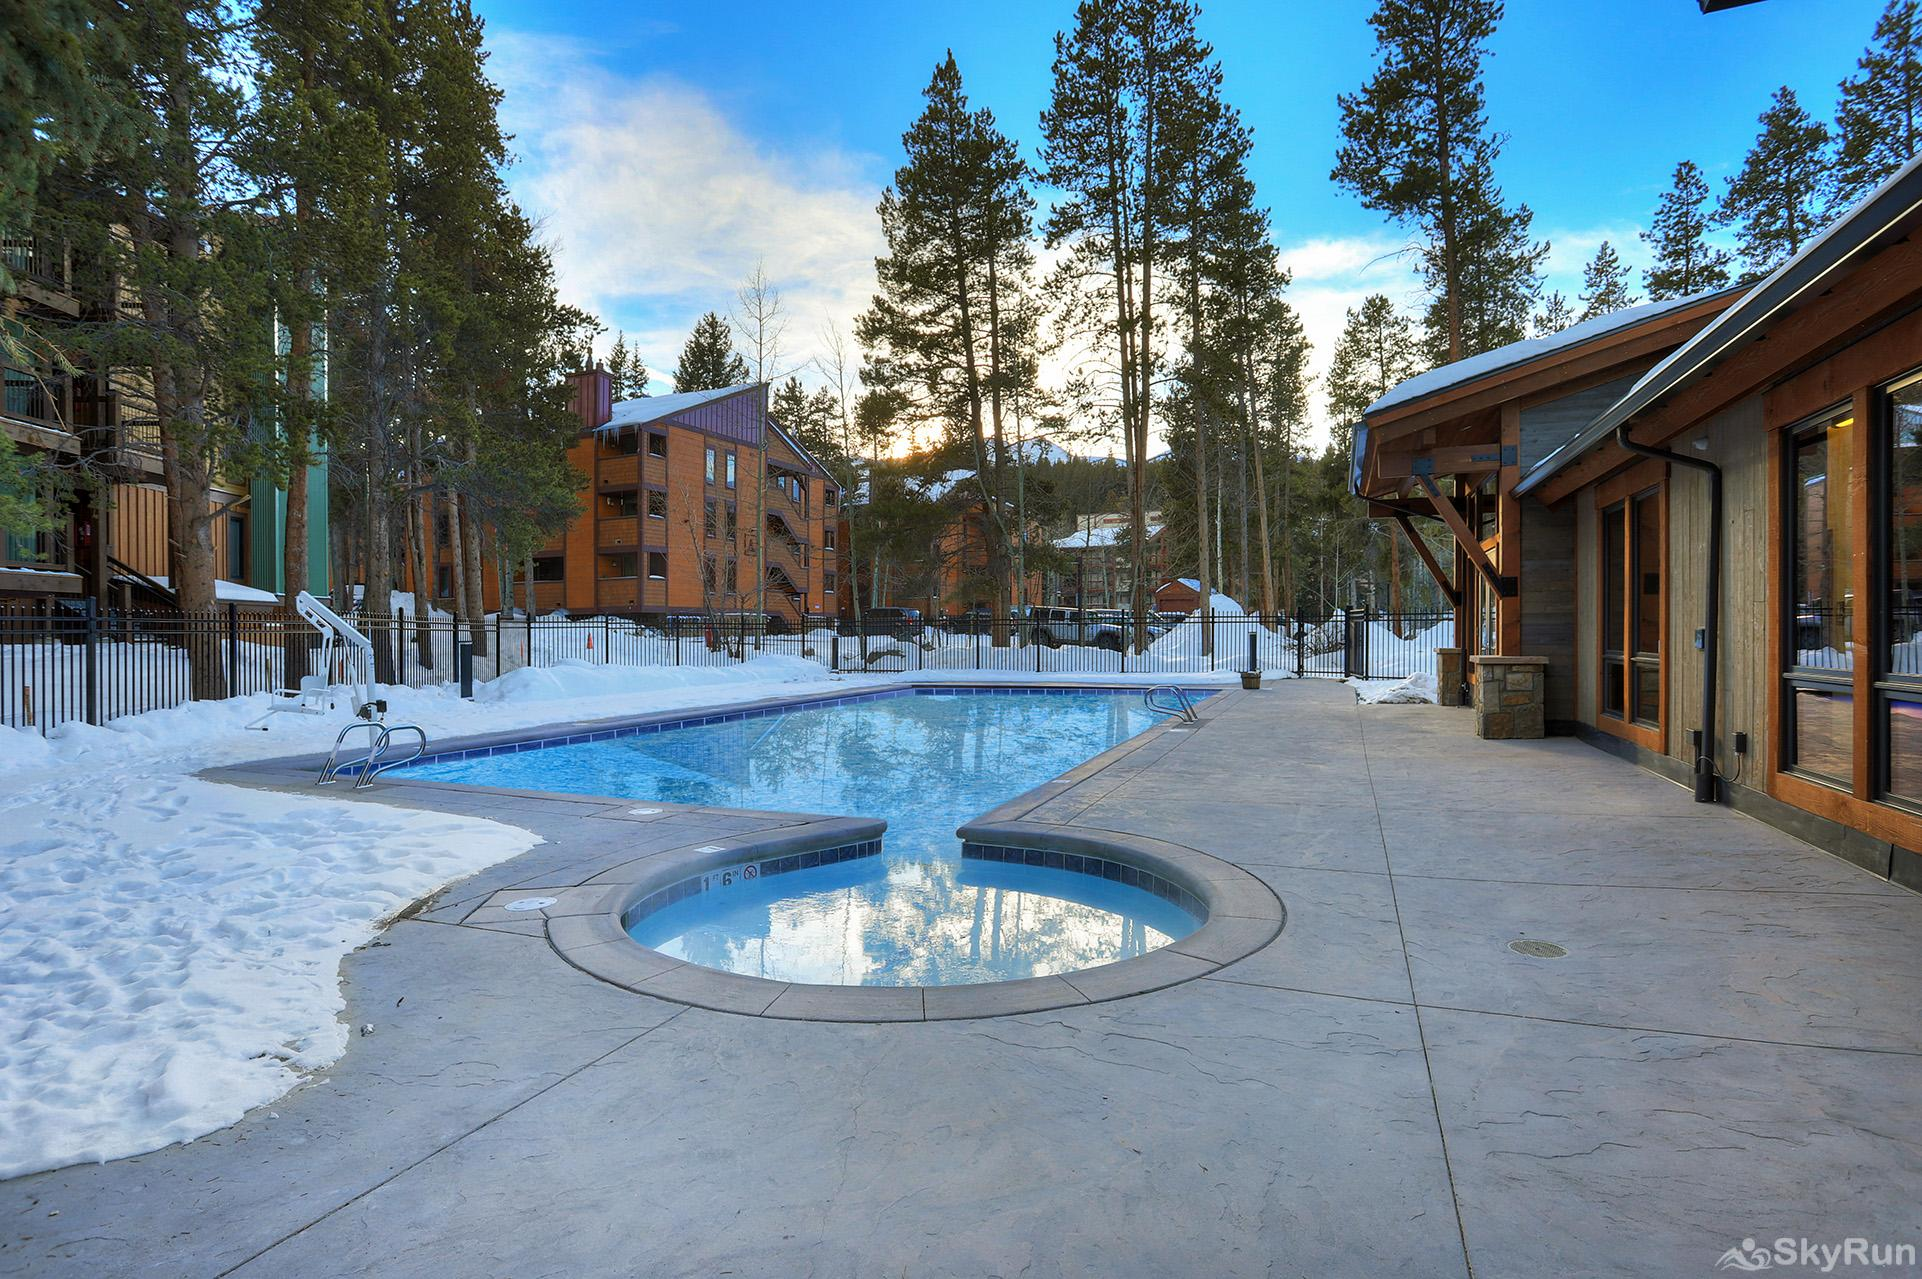 The Lift C212 Guests enjoy access to the Columbine Pool & Hot Tub Complex